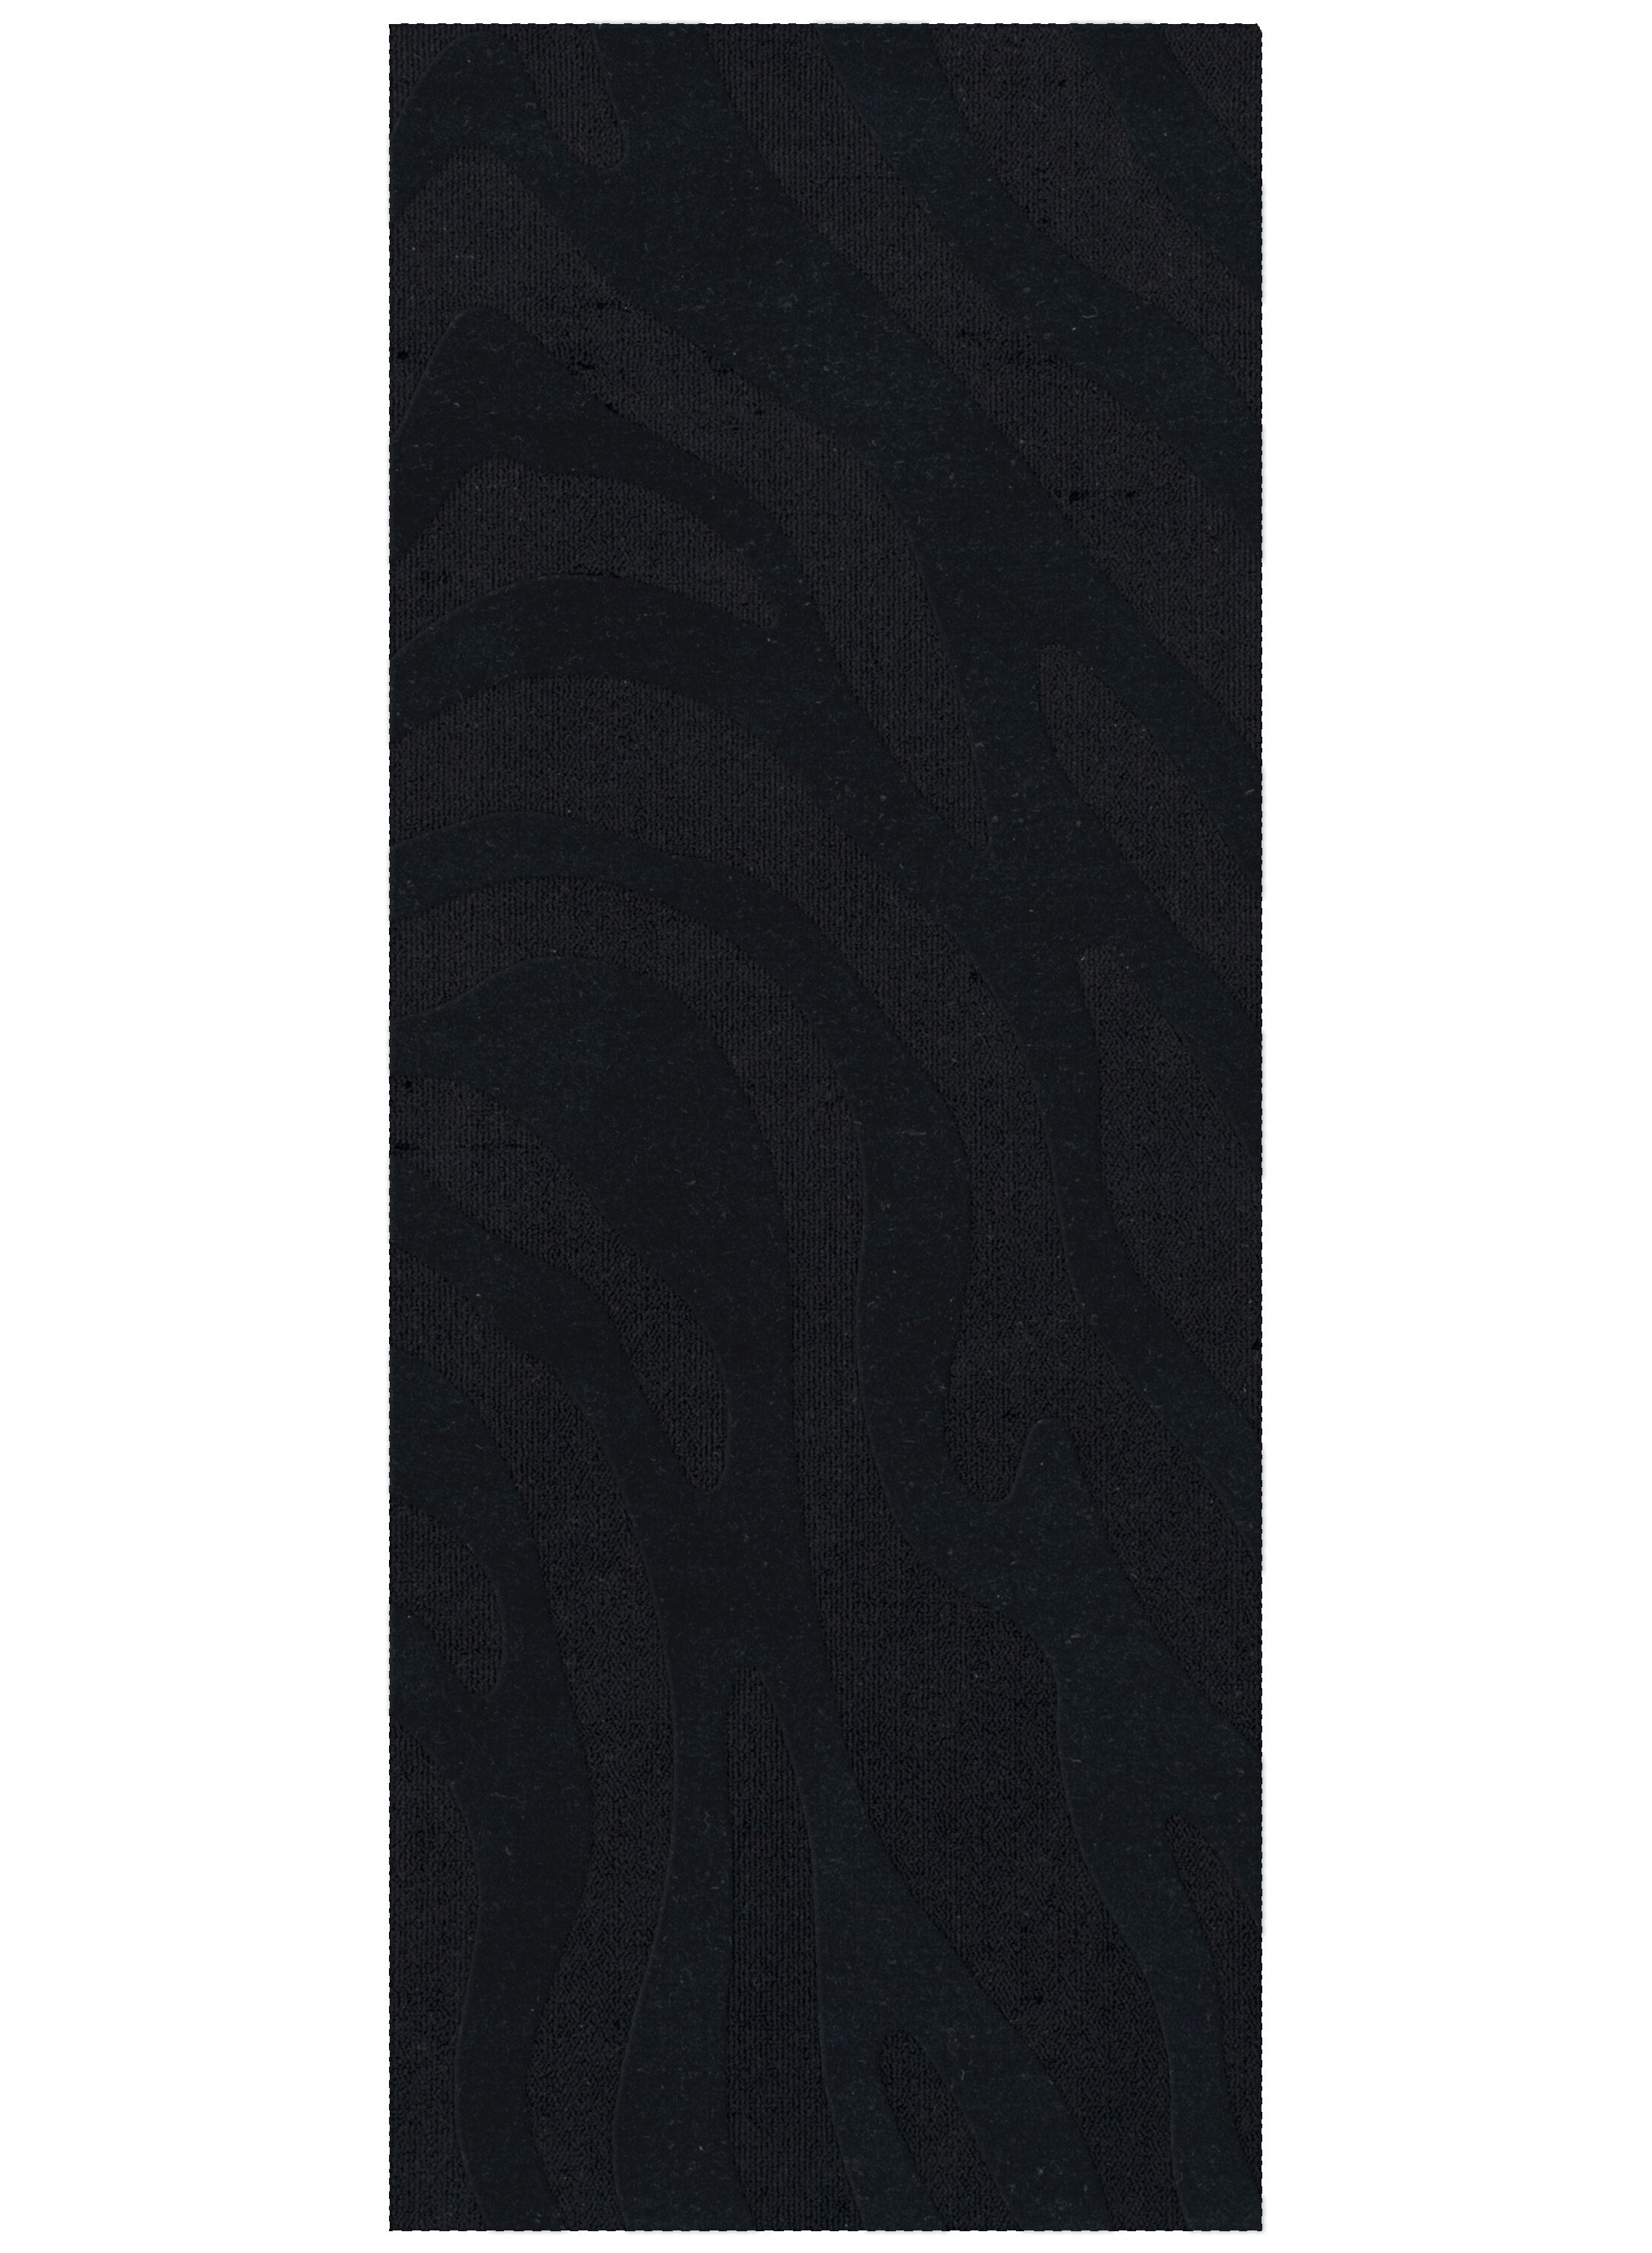 Dover Tufted Wool Black Area Rug Rug Size: Runner 2'6